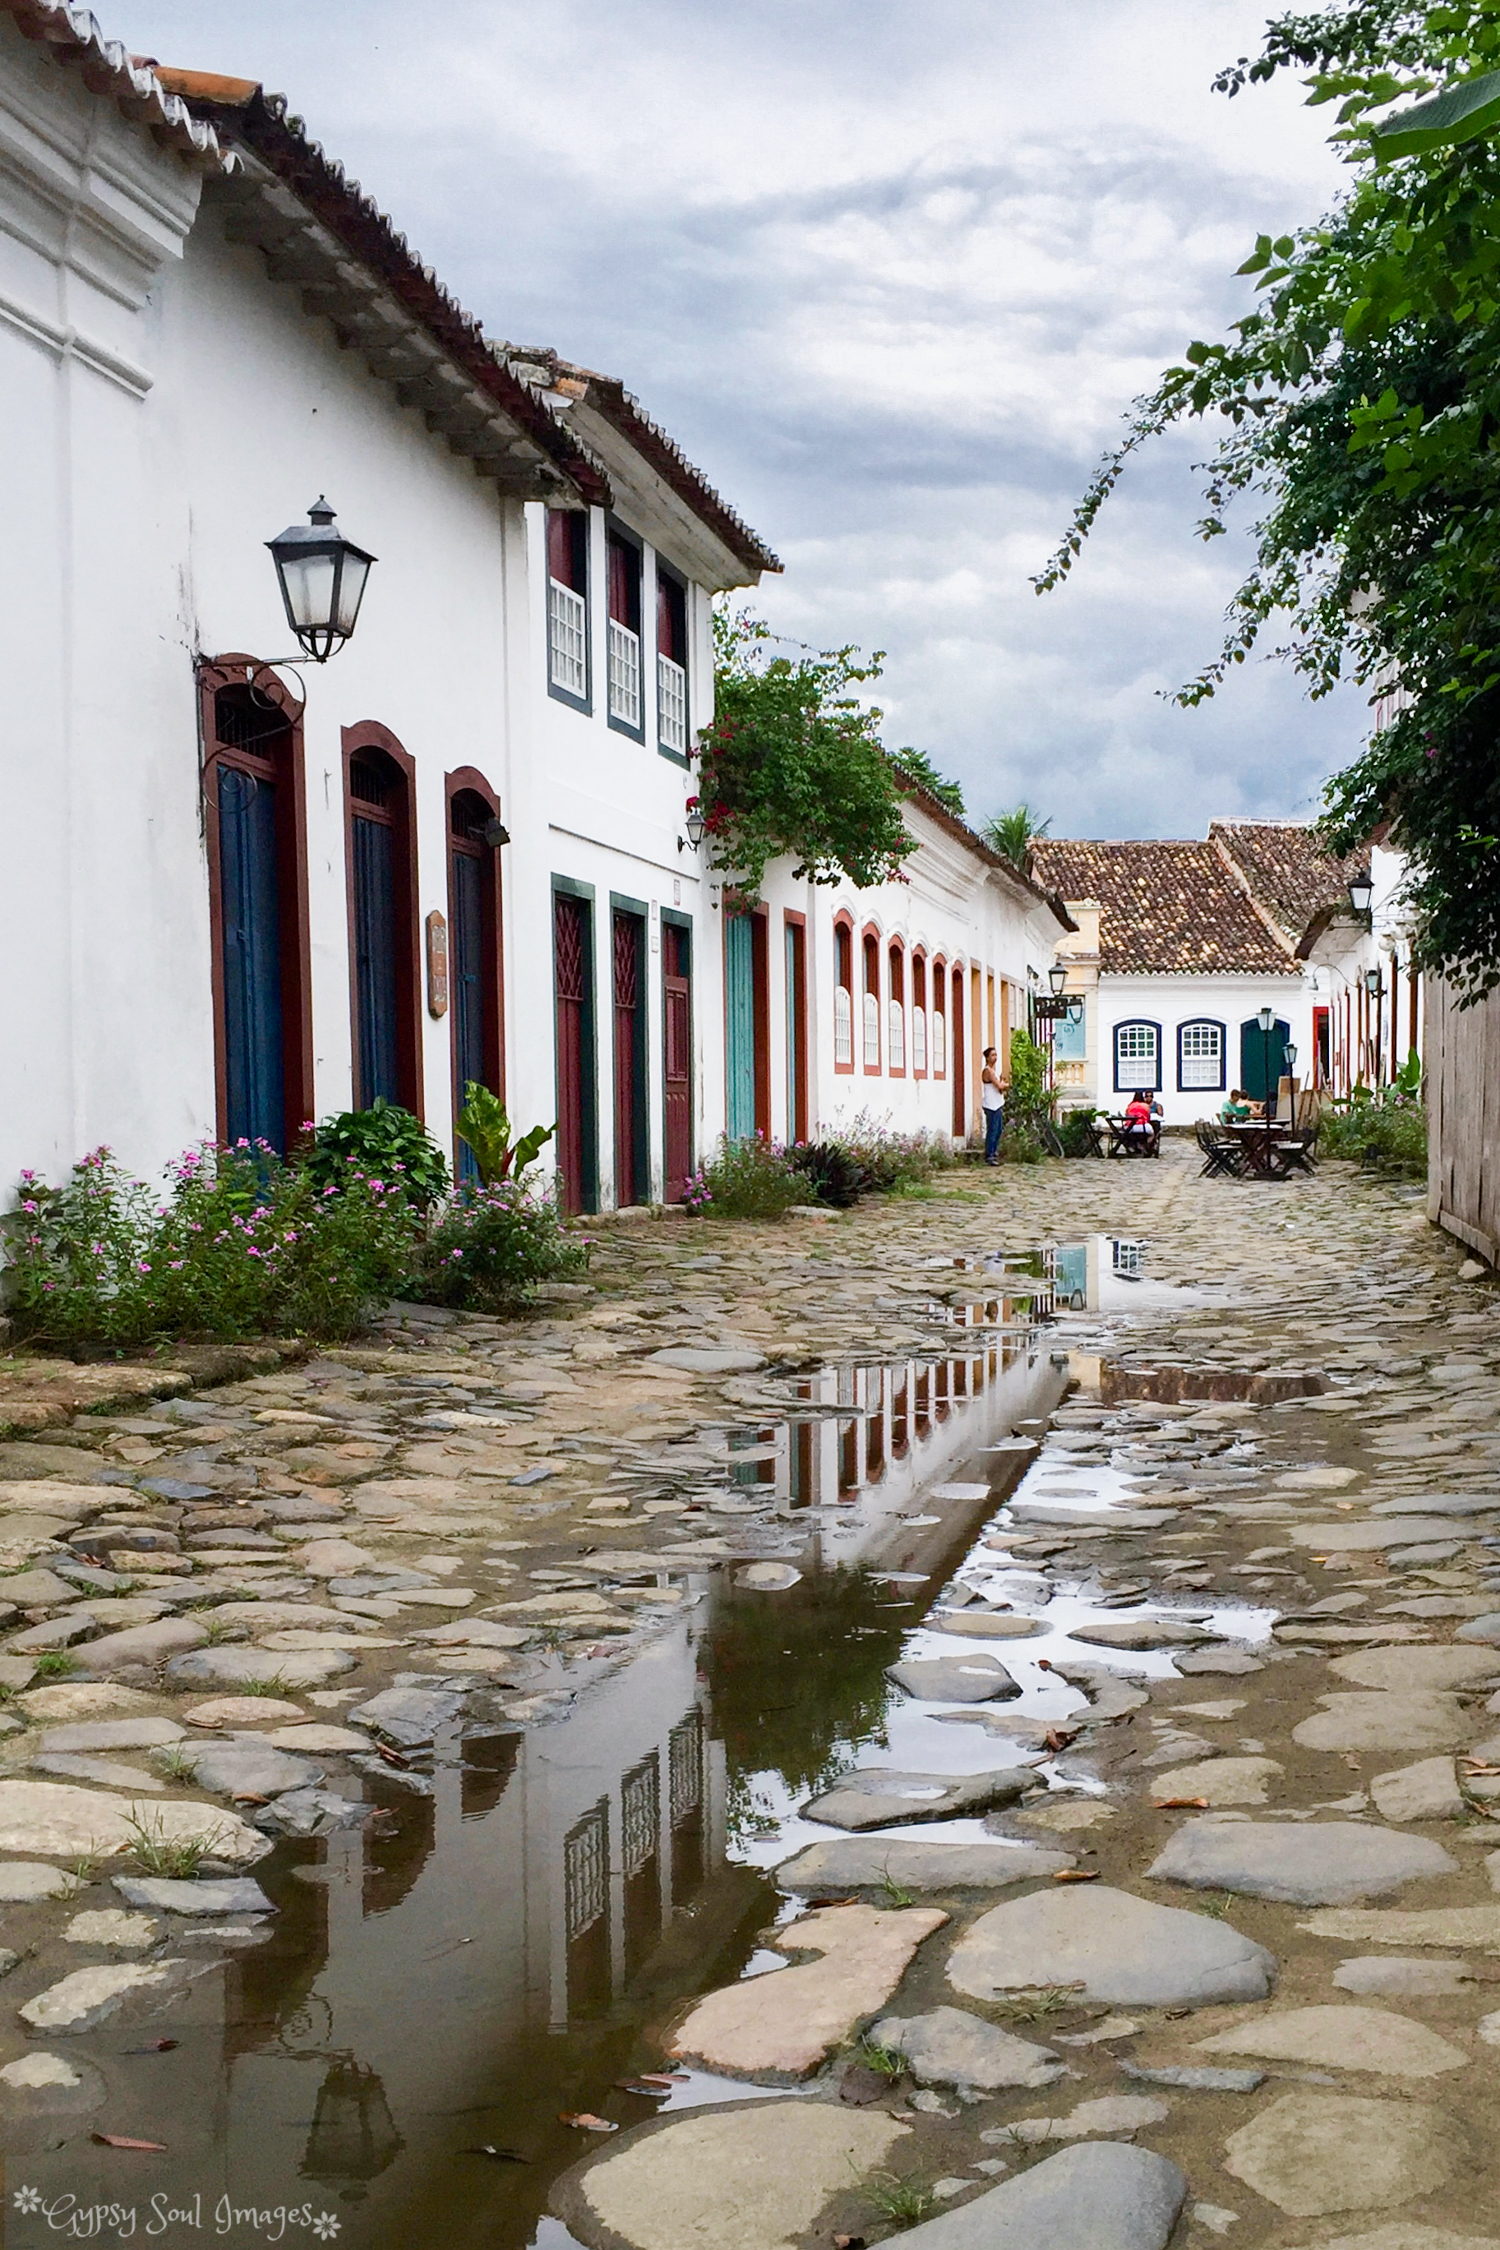 Picturesque Puddles - Paraty, Brazil Purchase this image in a variety of products from   Red Bubble  .